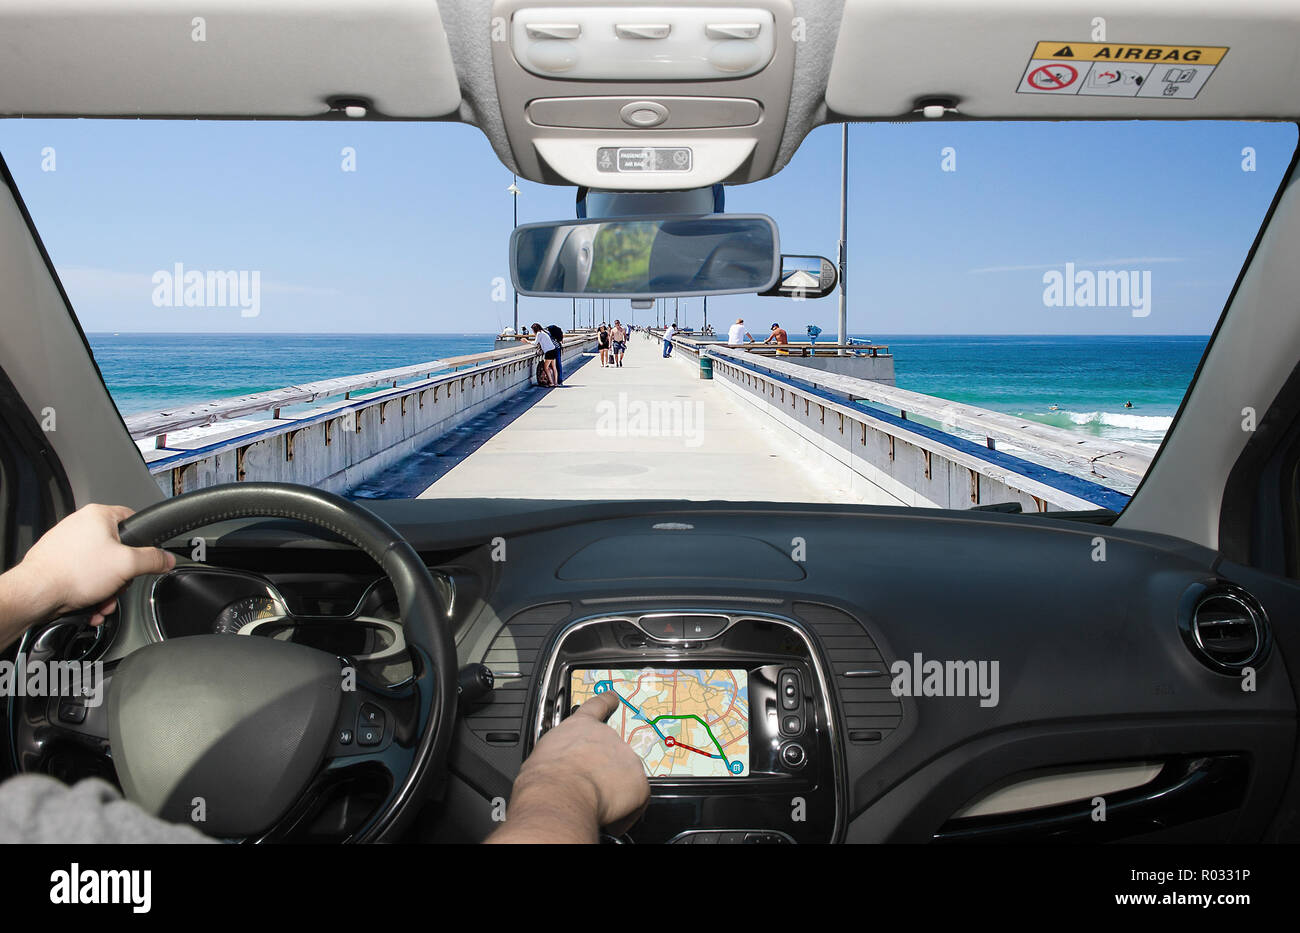 Driving a car while using the touch screen of a GPS navigation system towards Venice Beach Pier, Los Angeles, California, USA - Stock Image